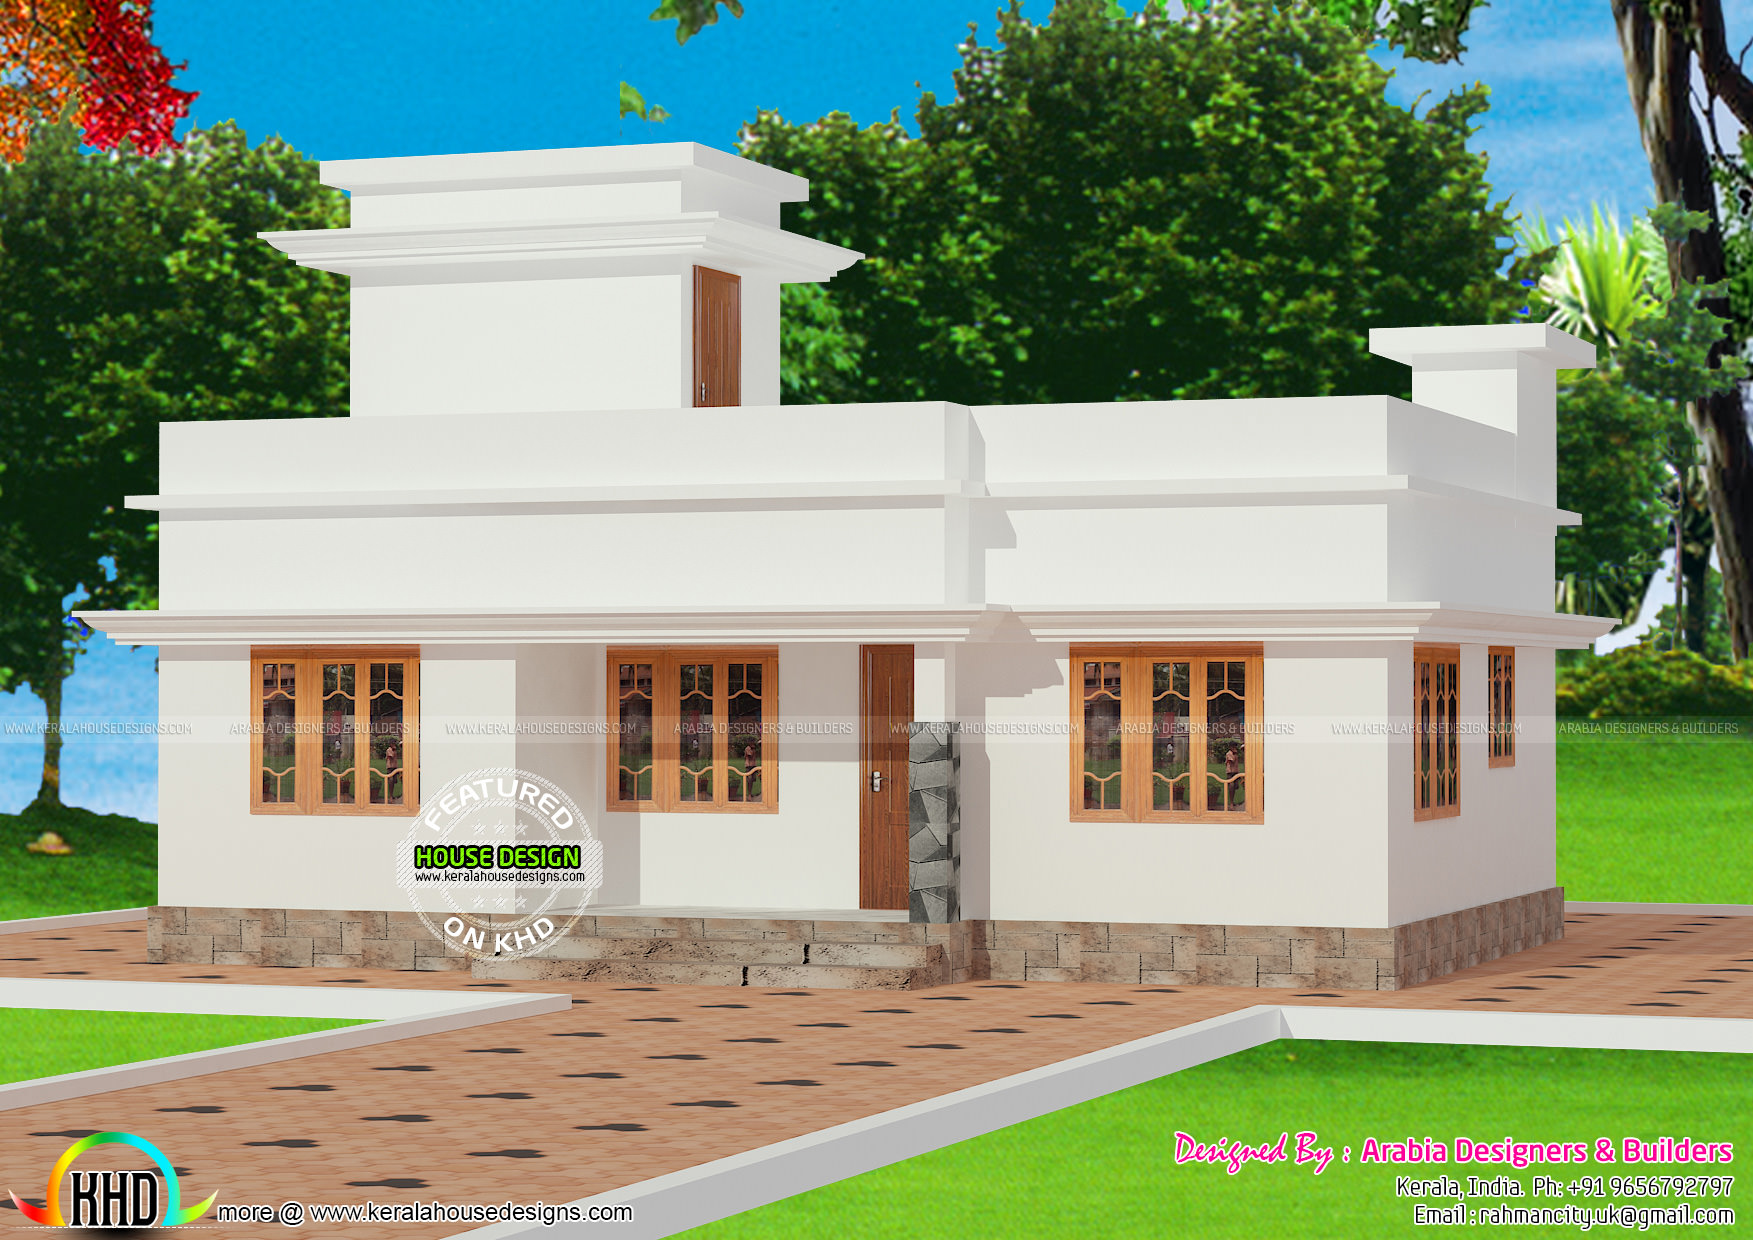 Rs 10 lakh Kerala house plan Kerala home design